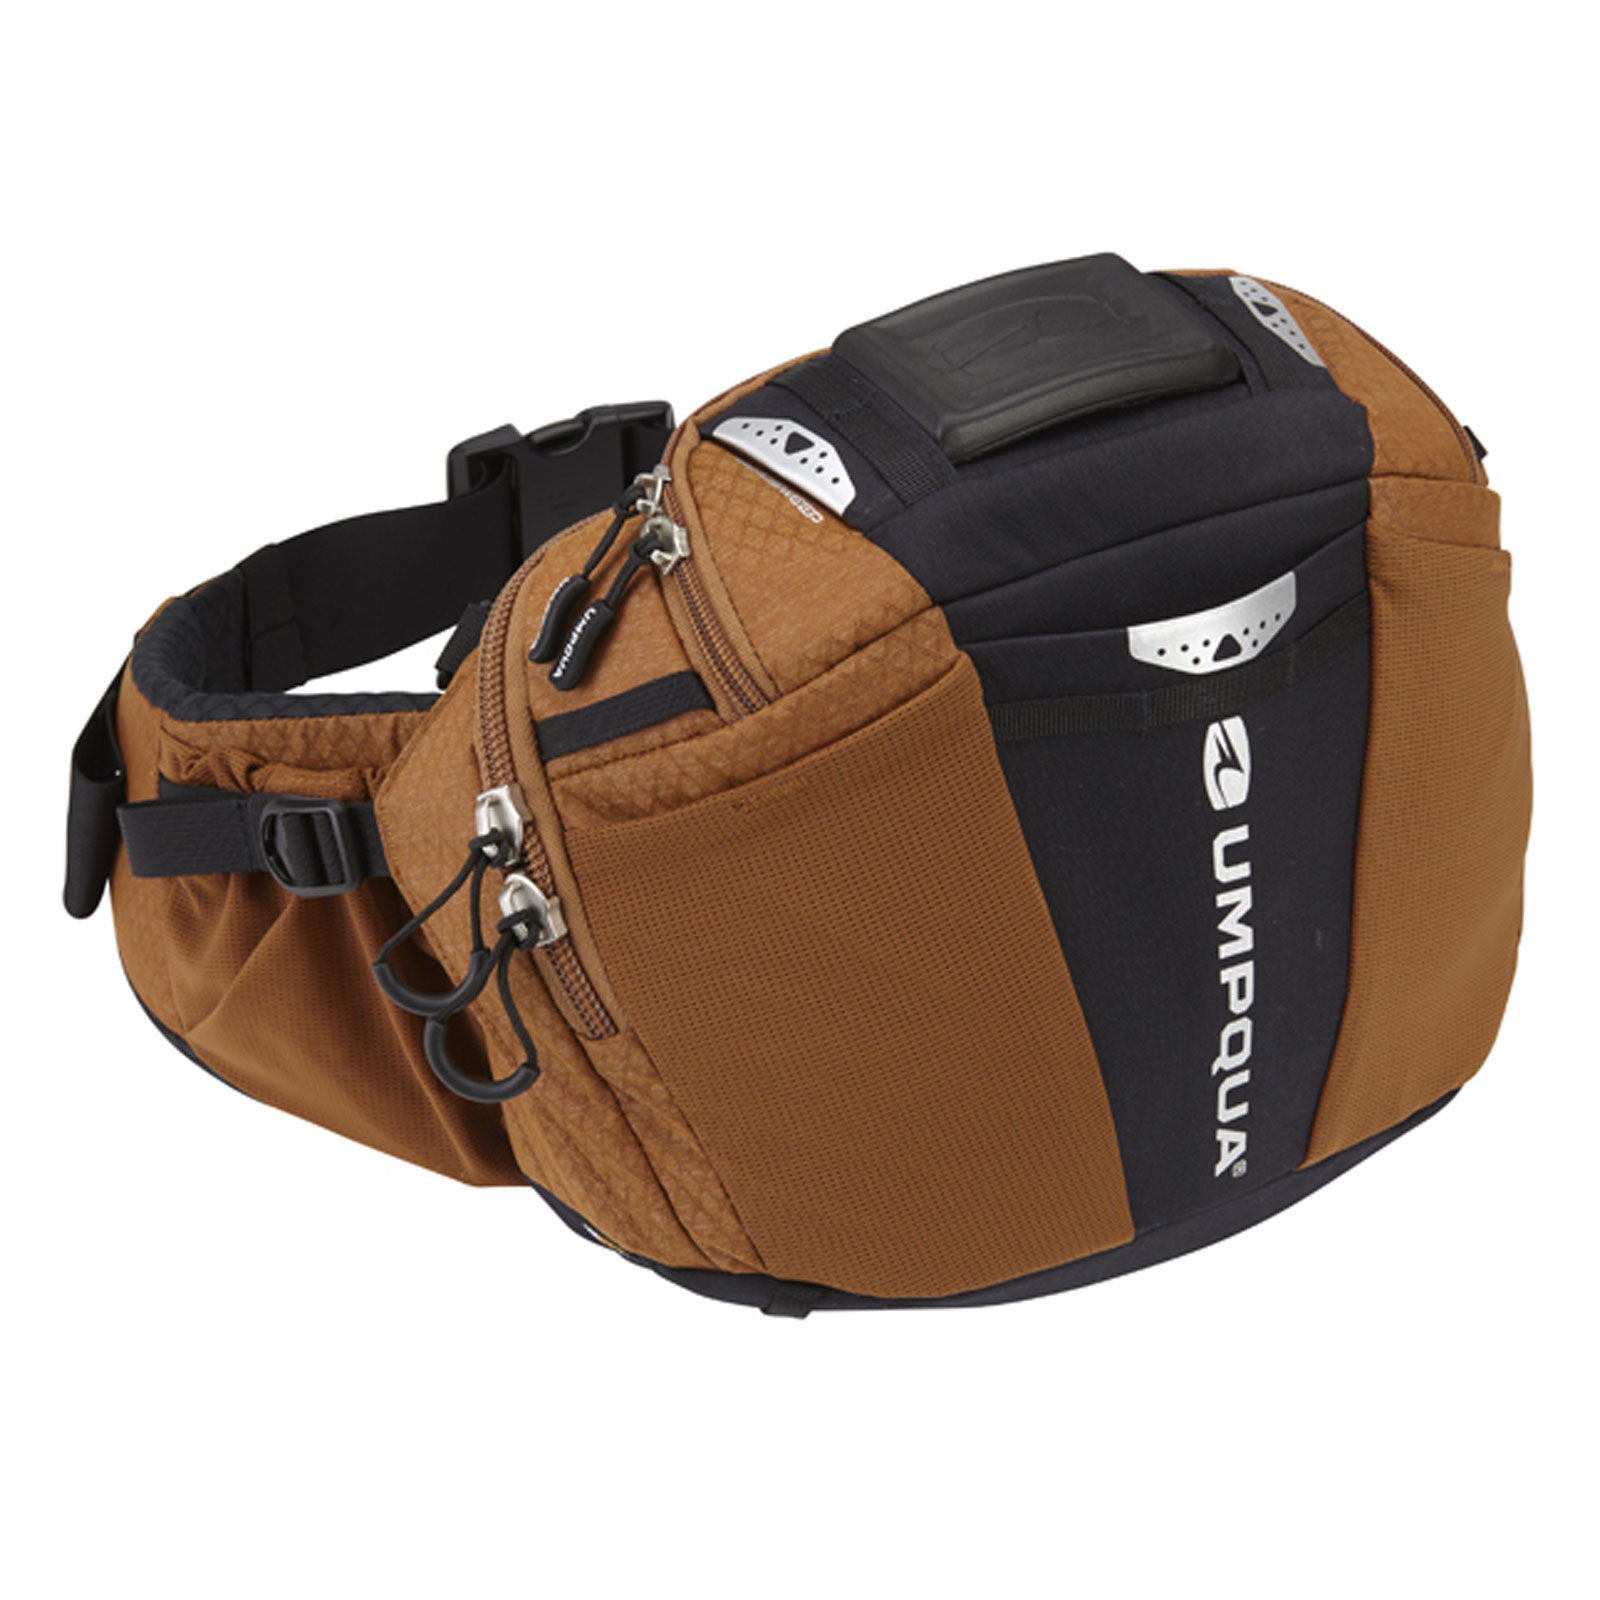 UMPQUA Ledges 500 ZS Zero Sweep™ Waist Pack Fly Fishing T...